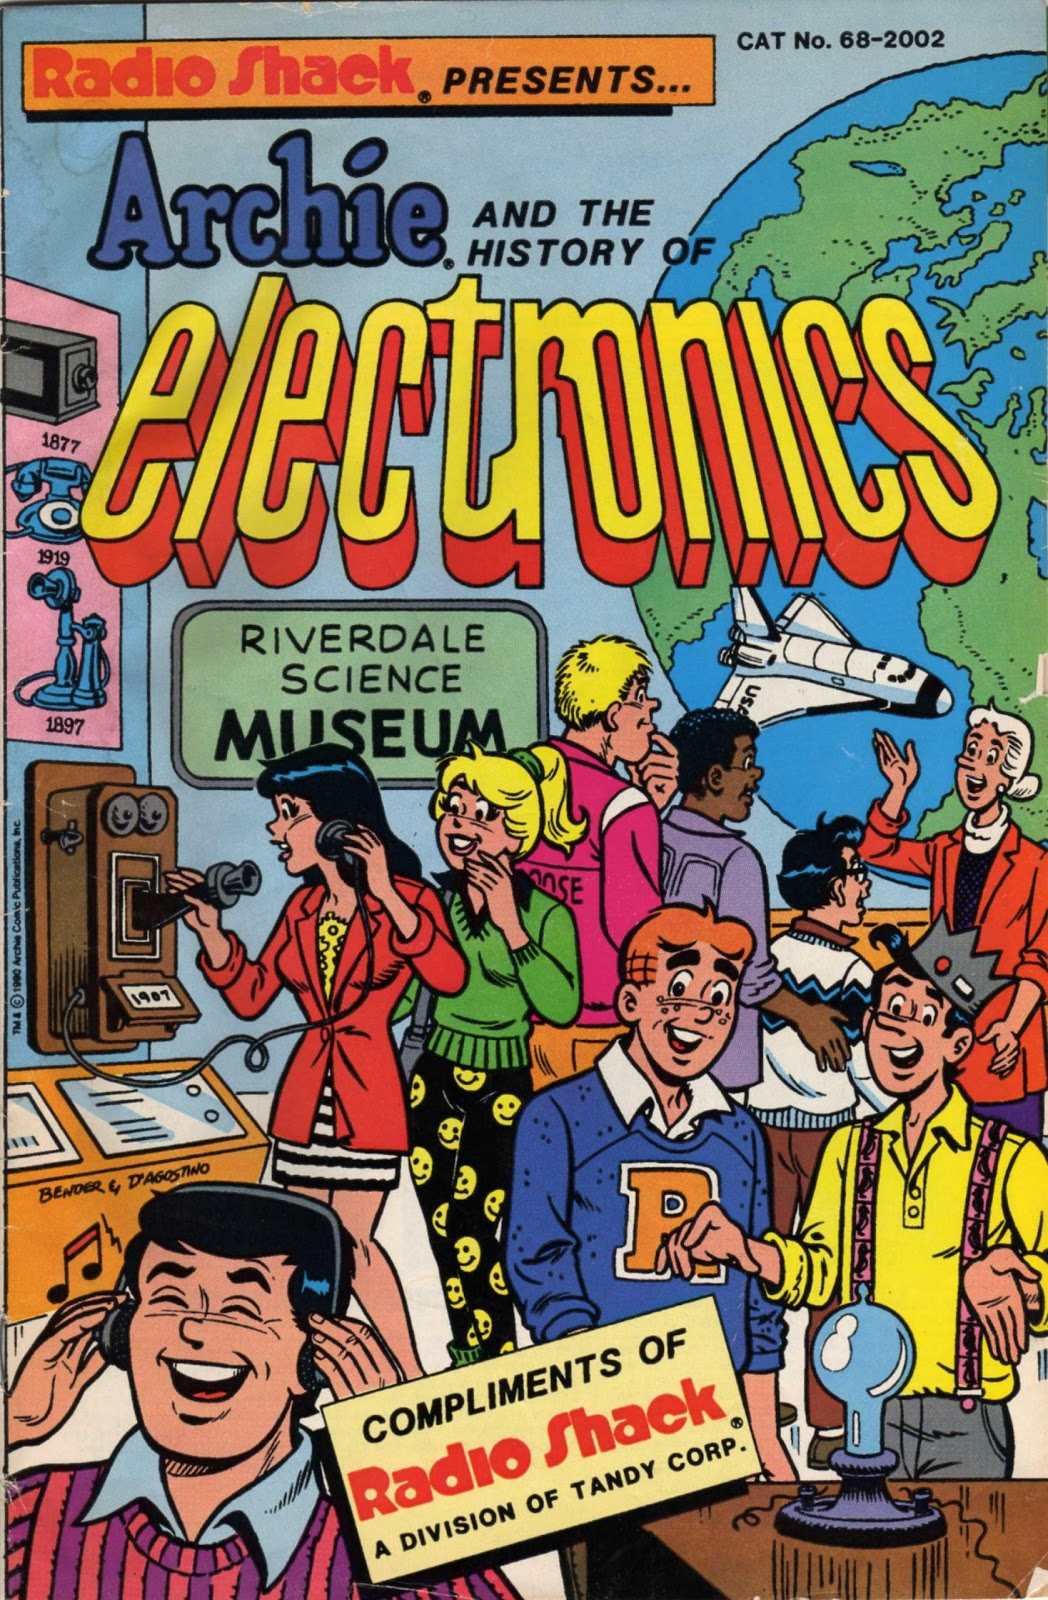 ARCANE RADIO TRIVIA: Archie and THE HISTORY OF ELECTRONICS!